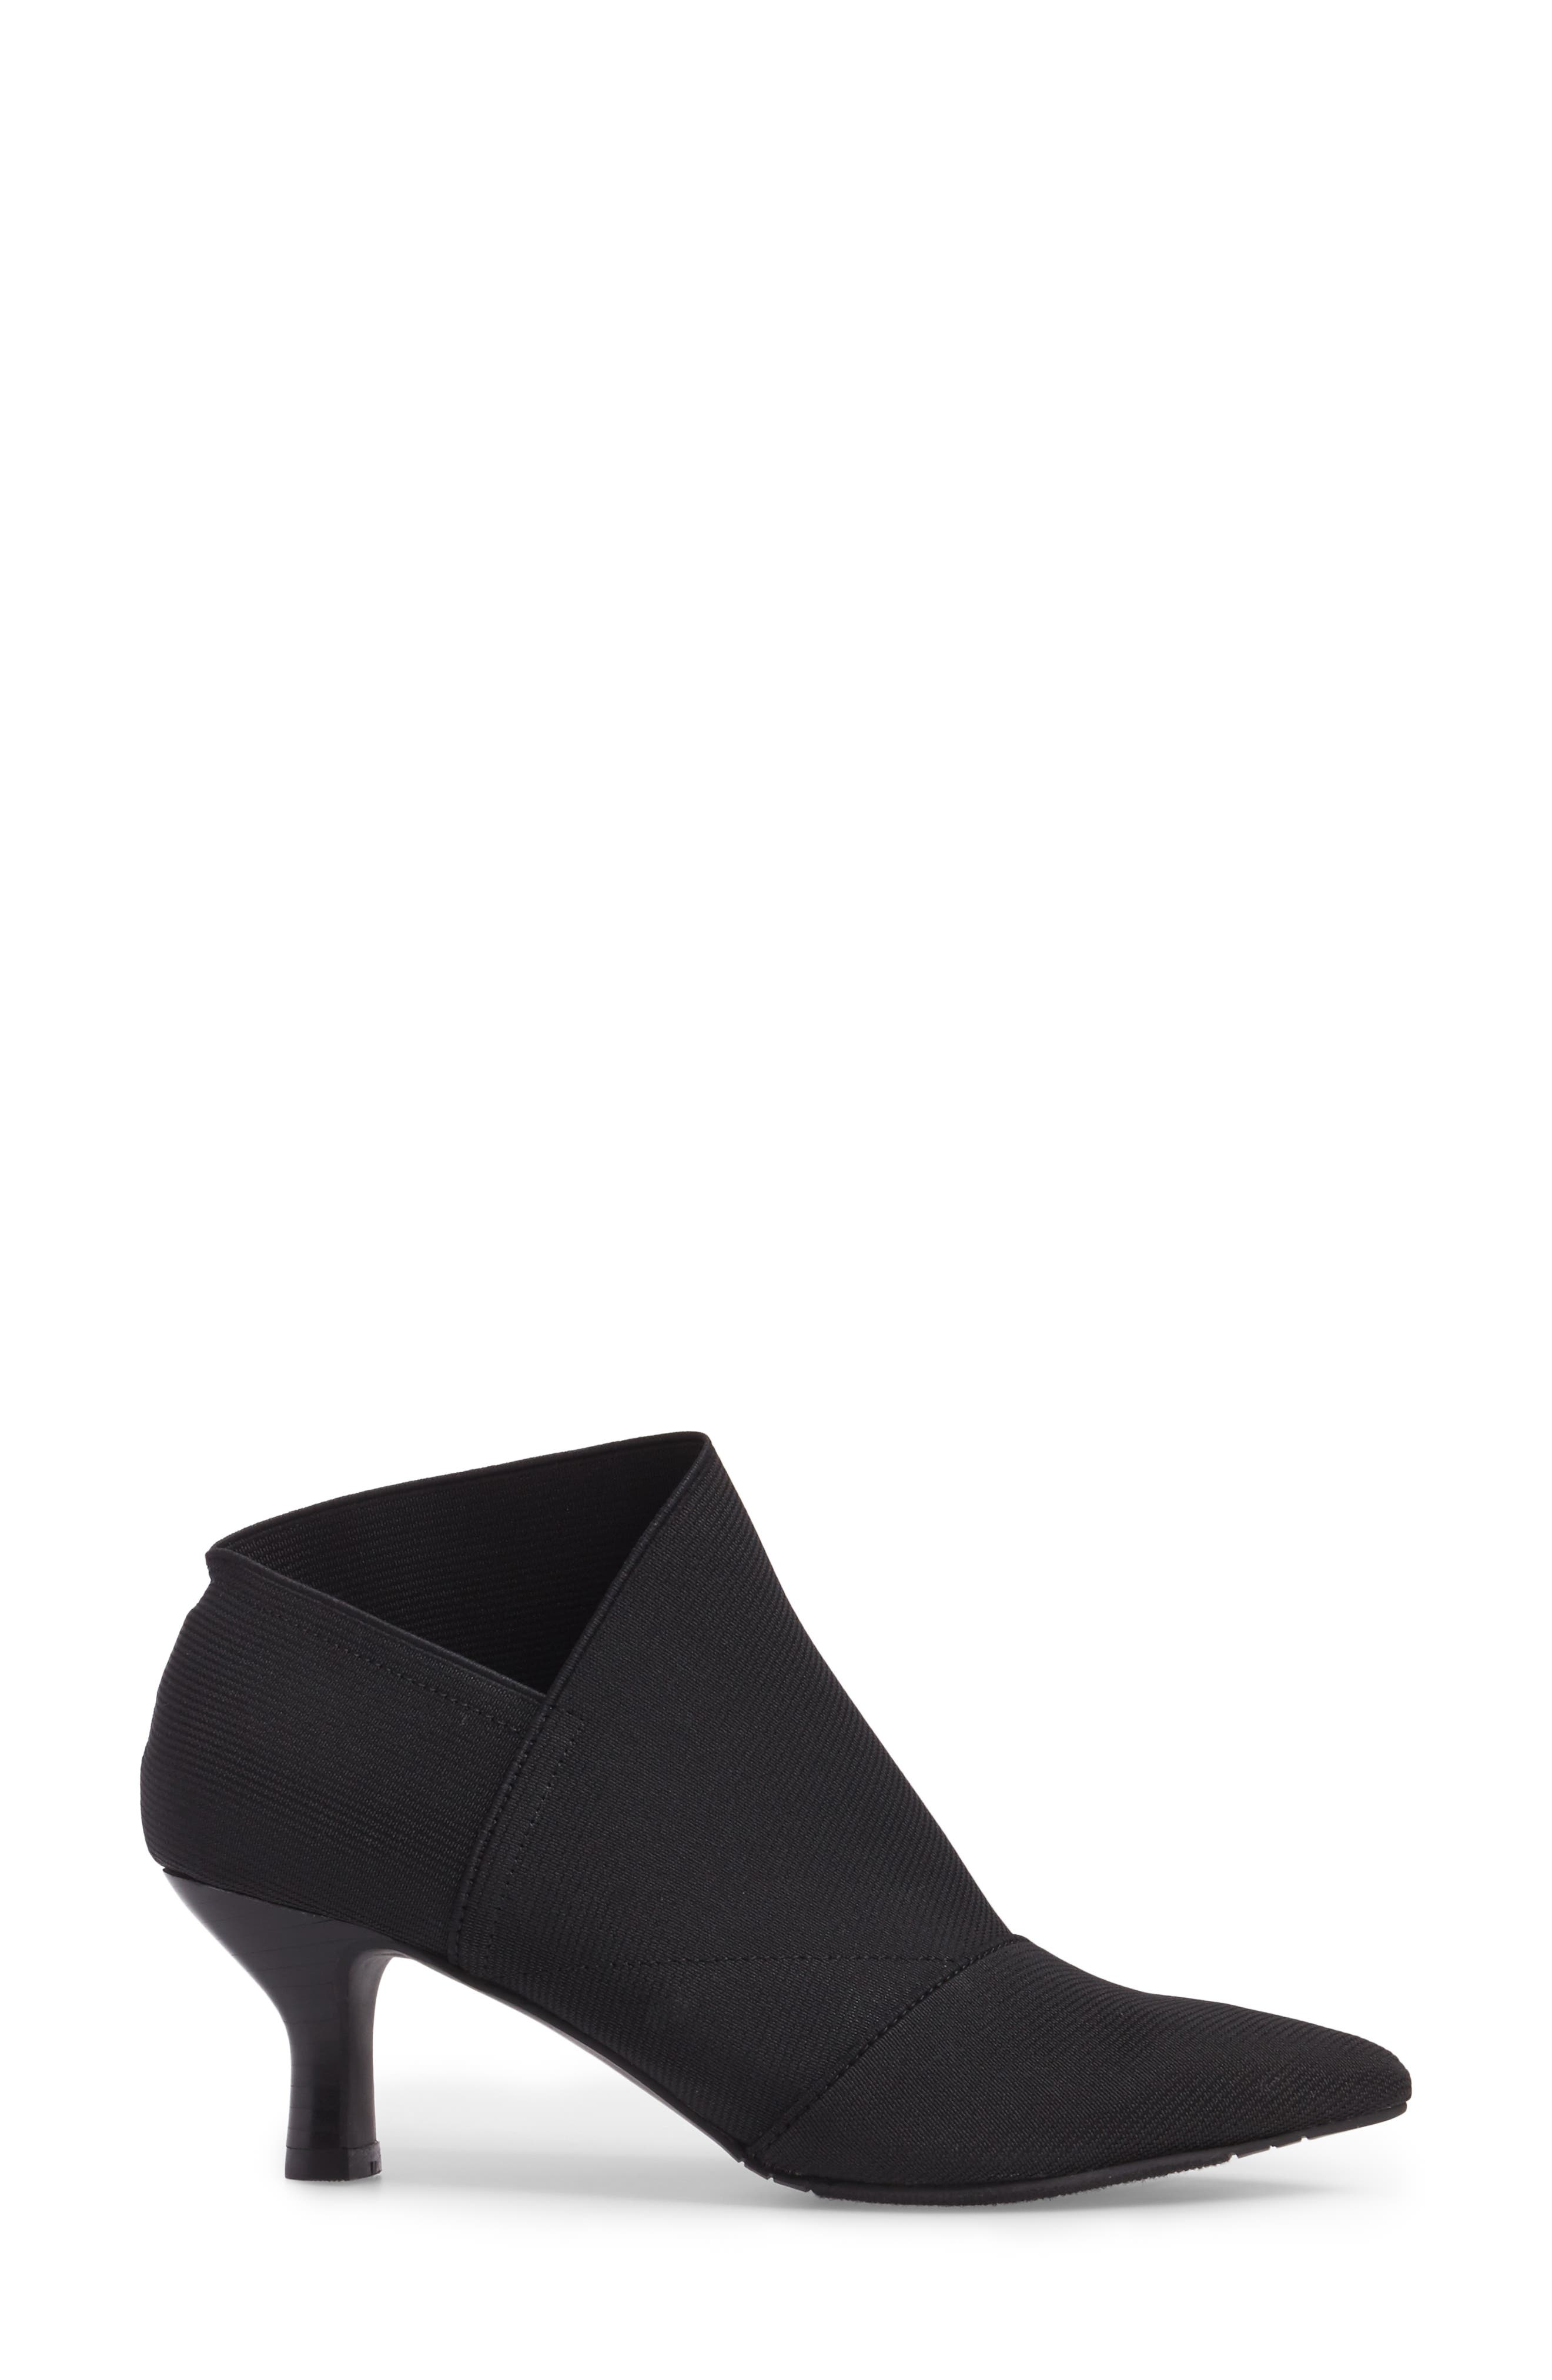 Hayes Pointy Toe Bootie,                             Alternate thumbnail 3, color,                             Black Fabric